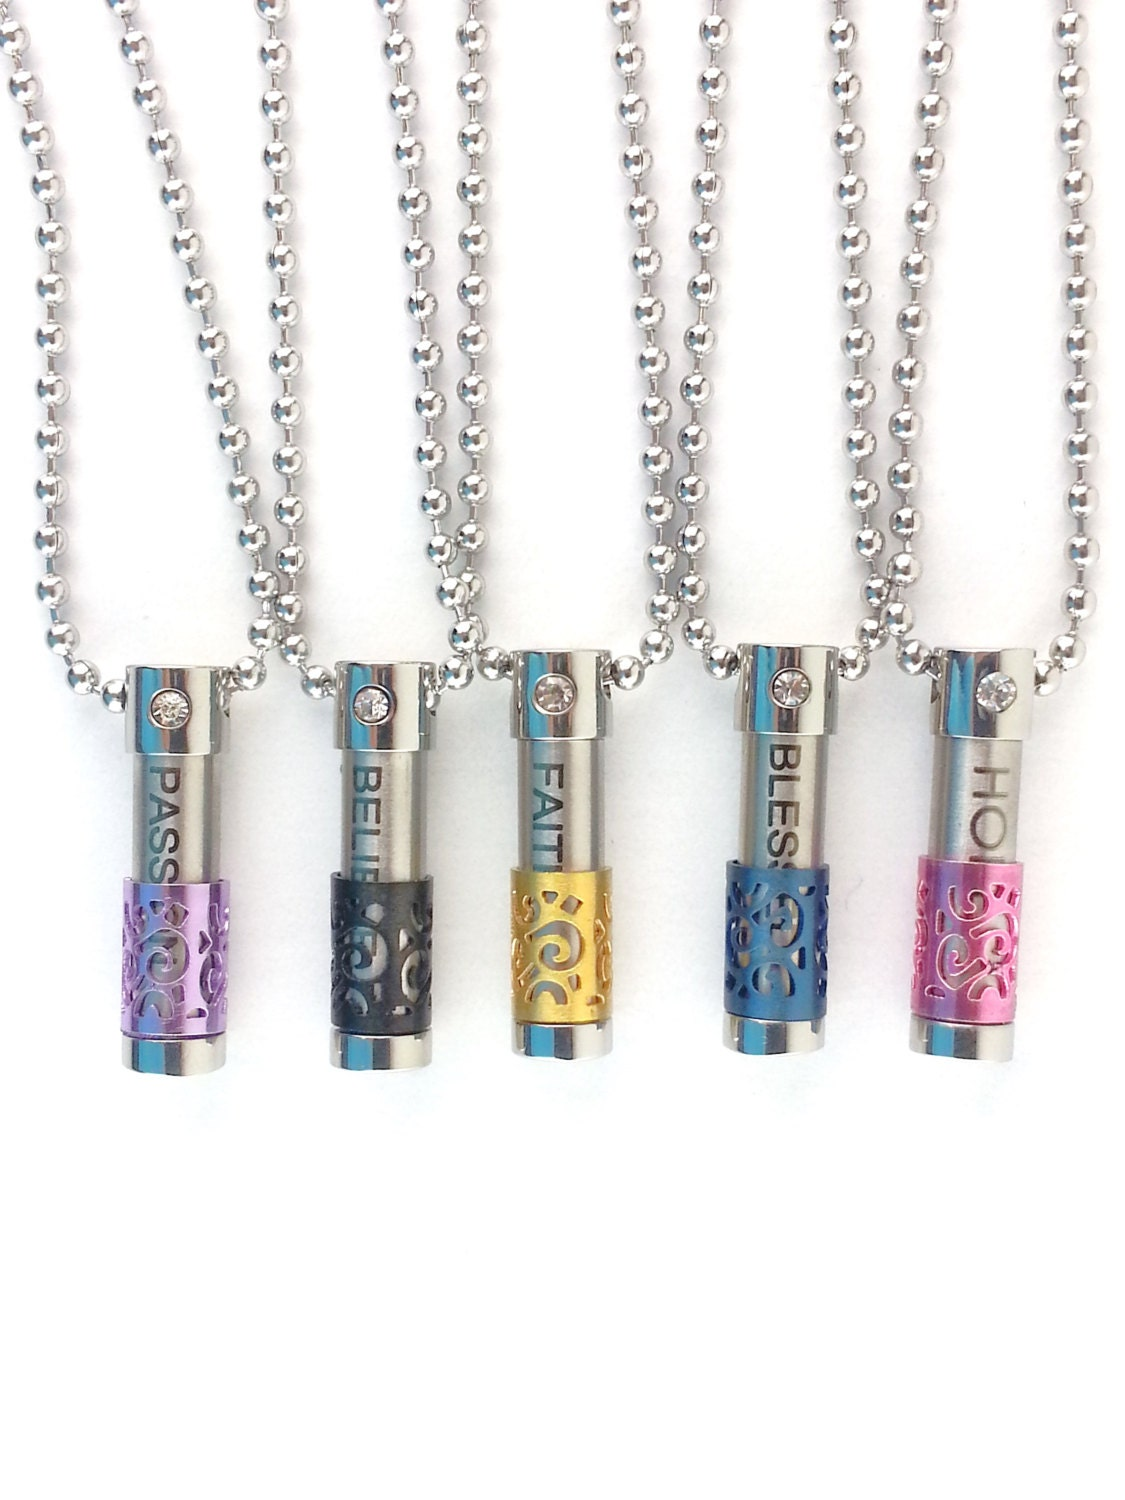 Diffuser necklace aromatherapy necklace essential oil zoom aloadofball Gallery